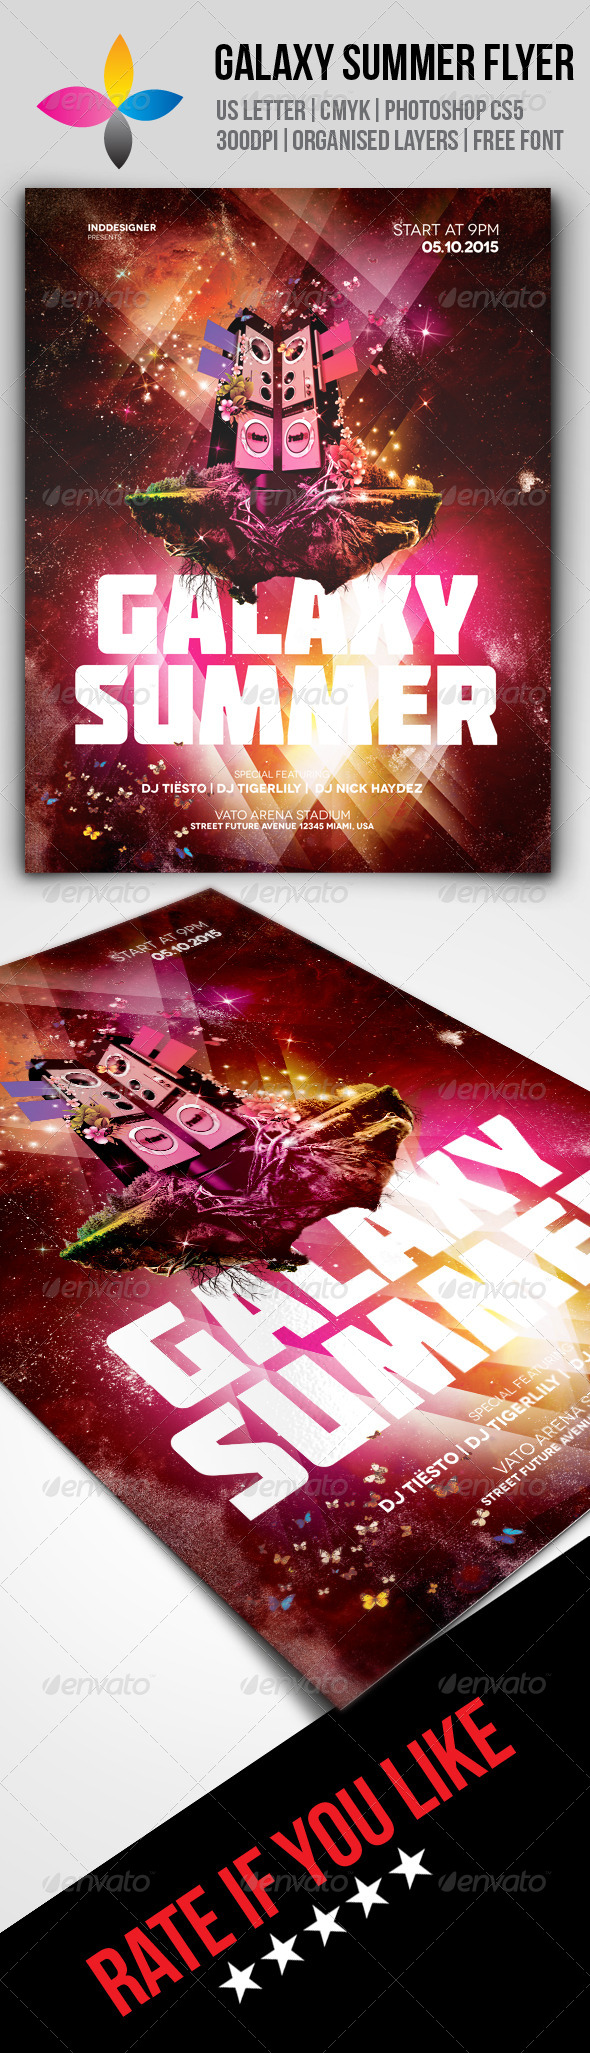 GraphicRiver Galaxy Summer Flyer 8496620